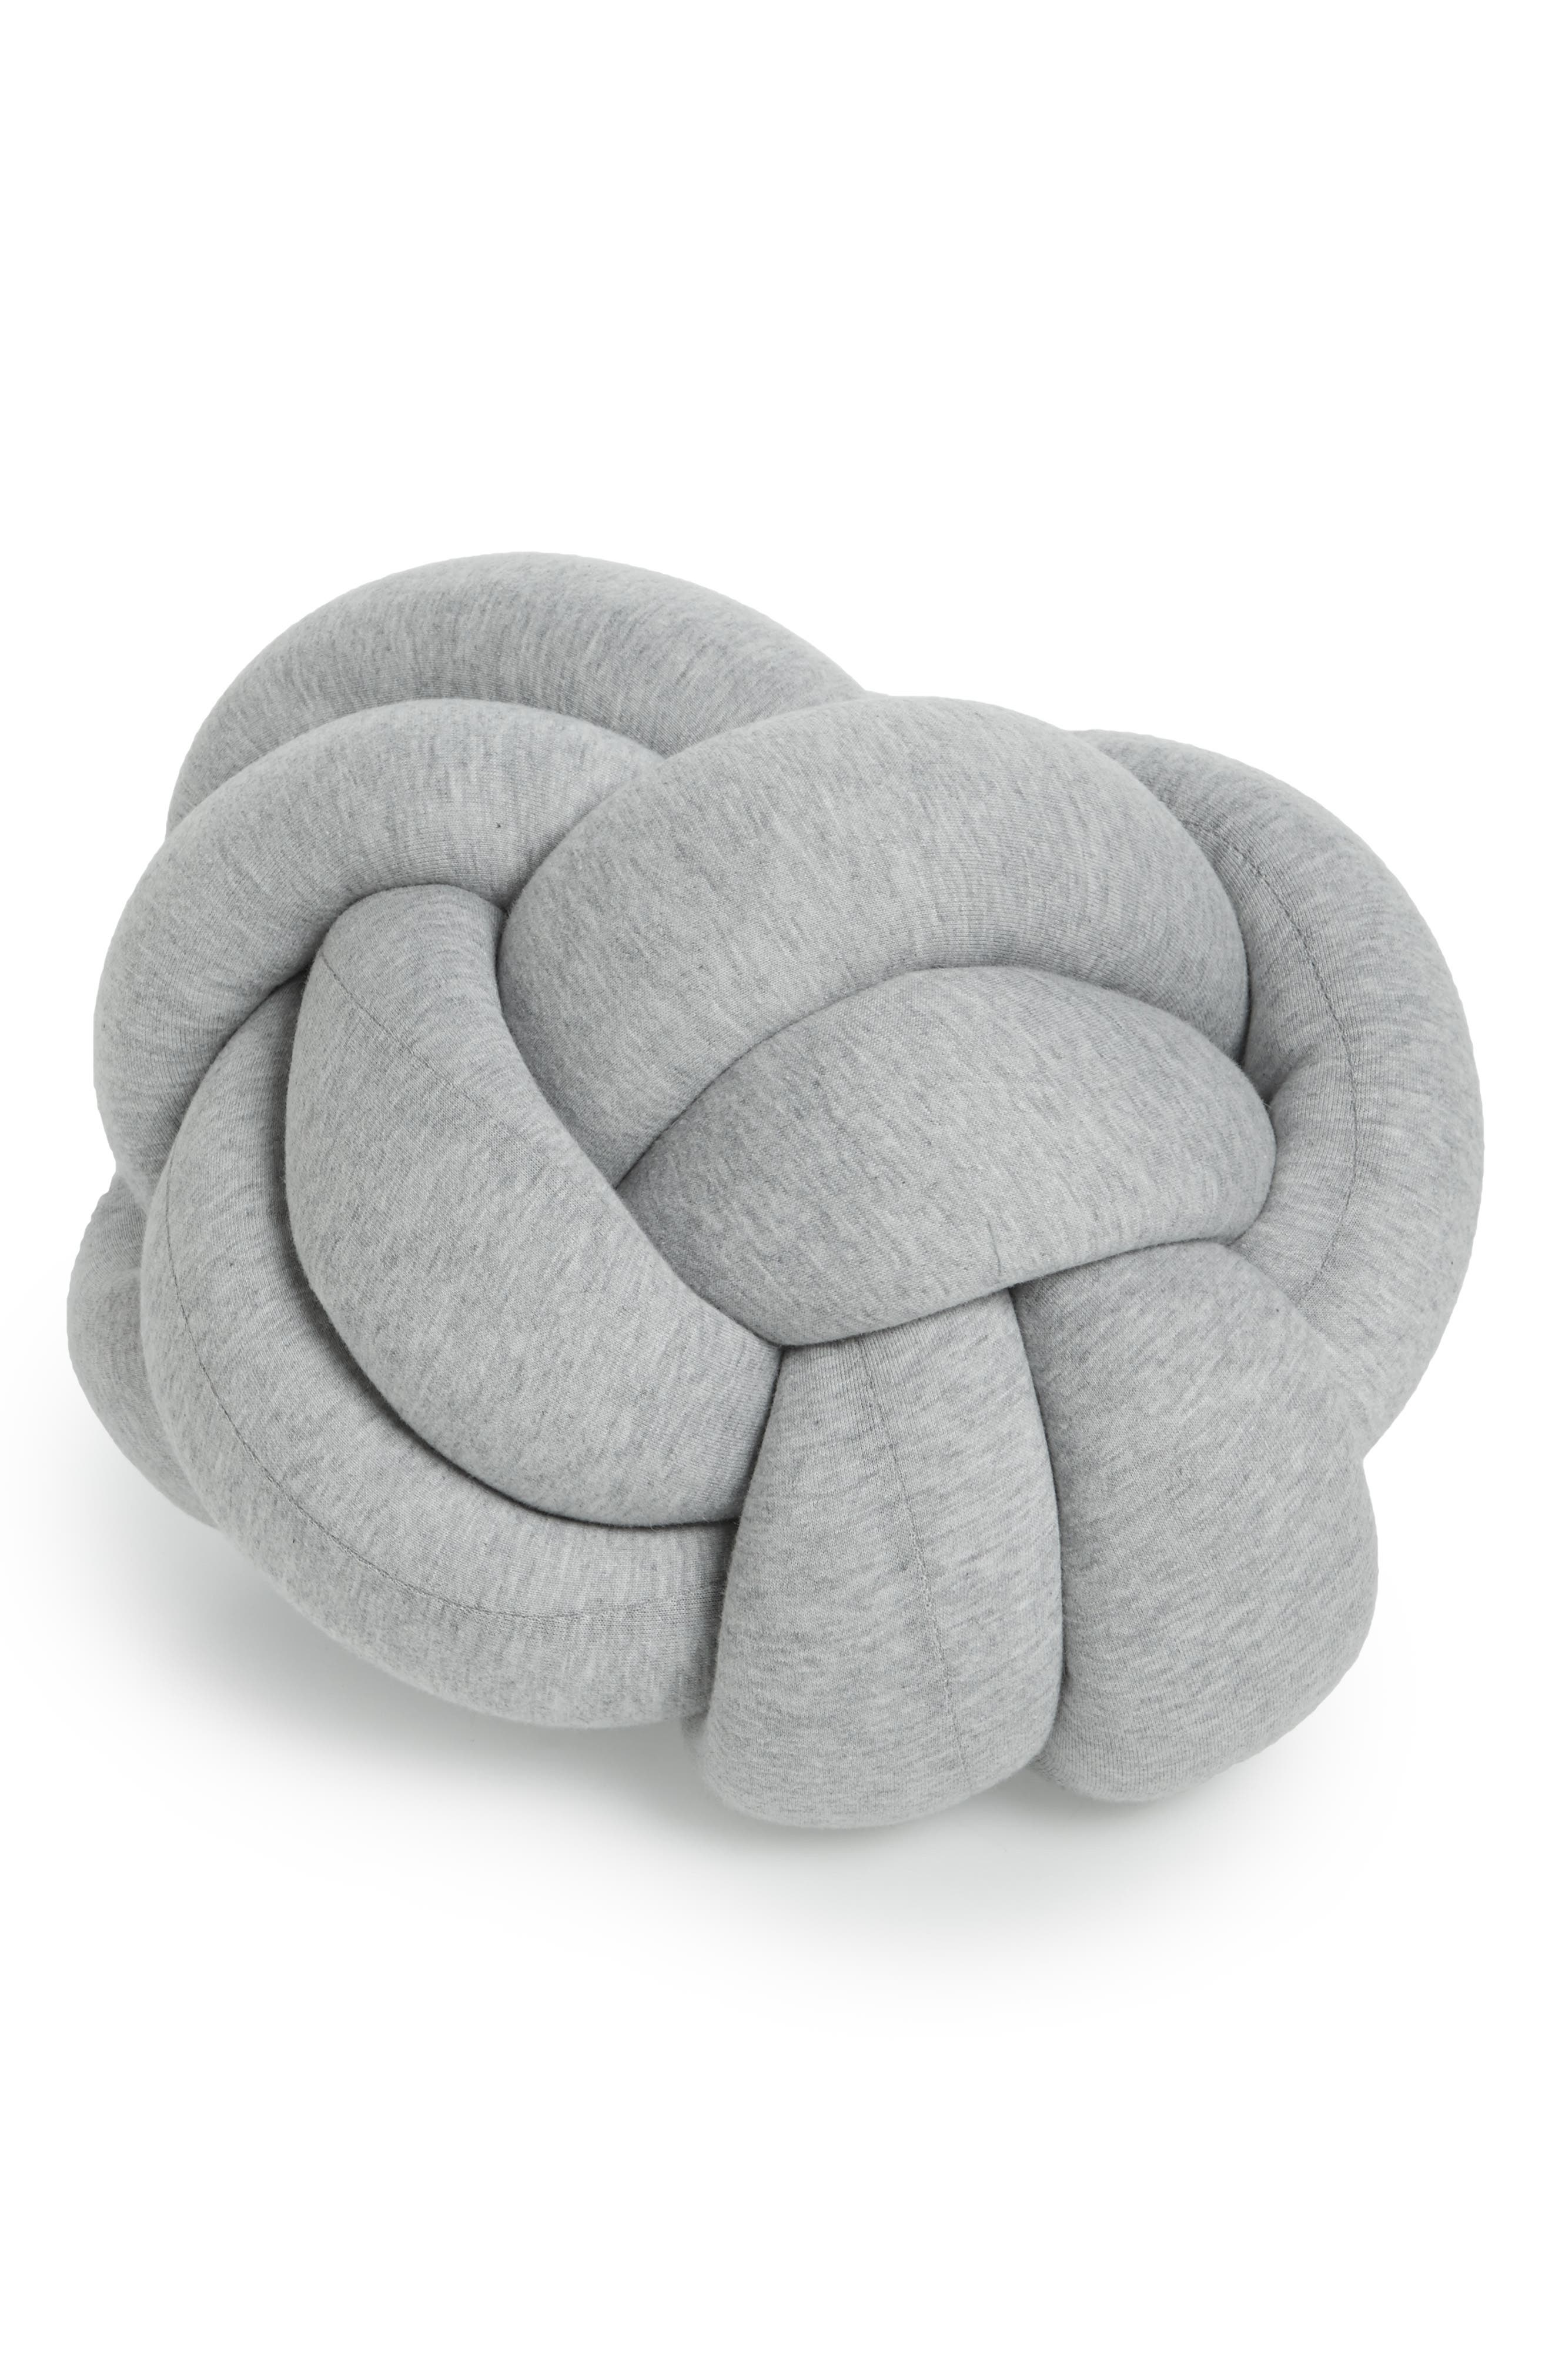 Jersey Knot Pillow,                             Main thumbnail 1, color,                             020